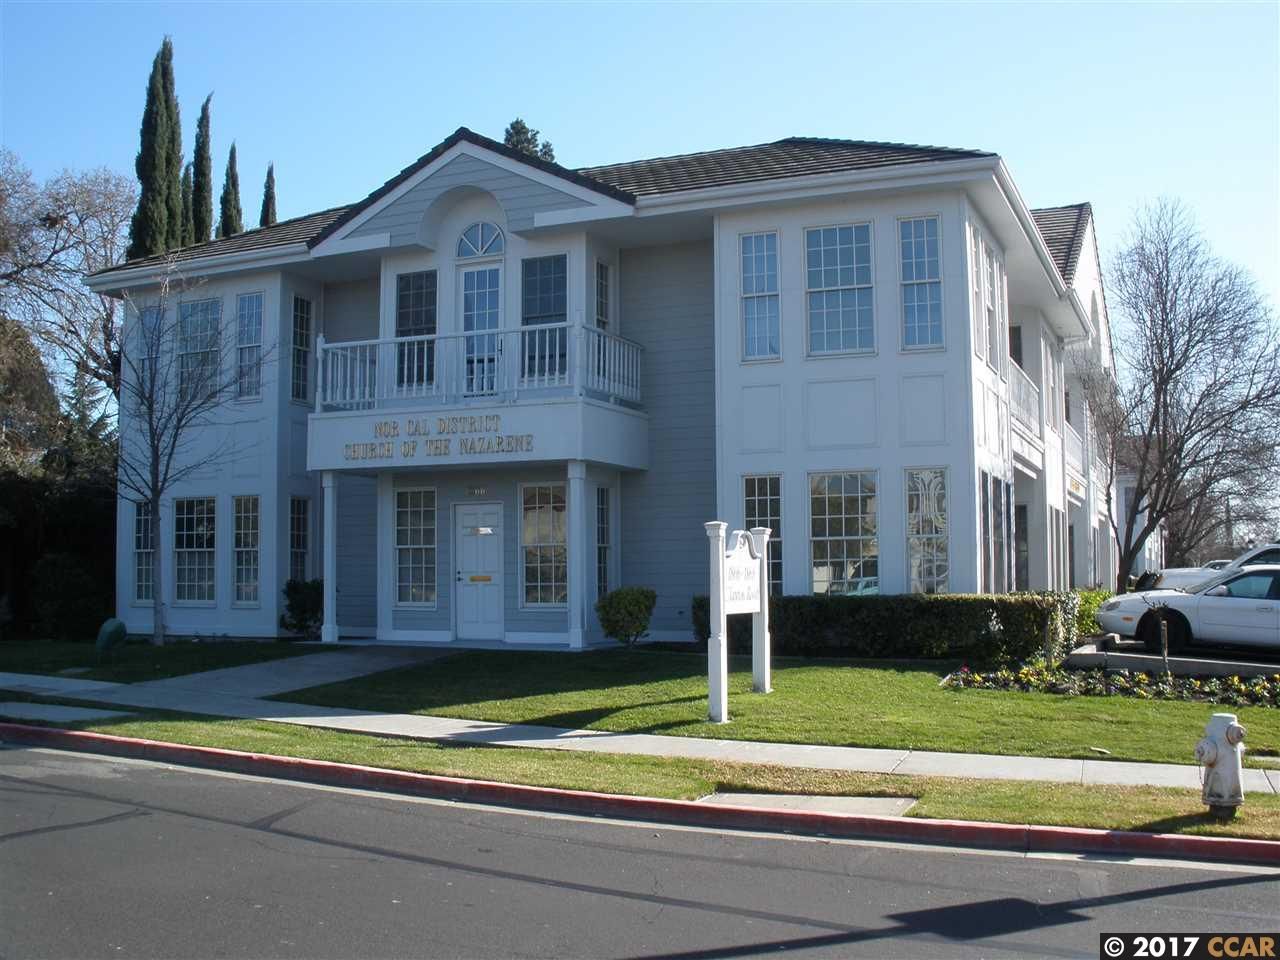 Property Details For 1866 Clayton Rd Concord Ca 94520 Doug Buenz The 680 Homes Group 680homes Com